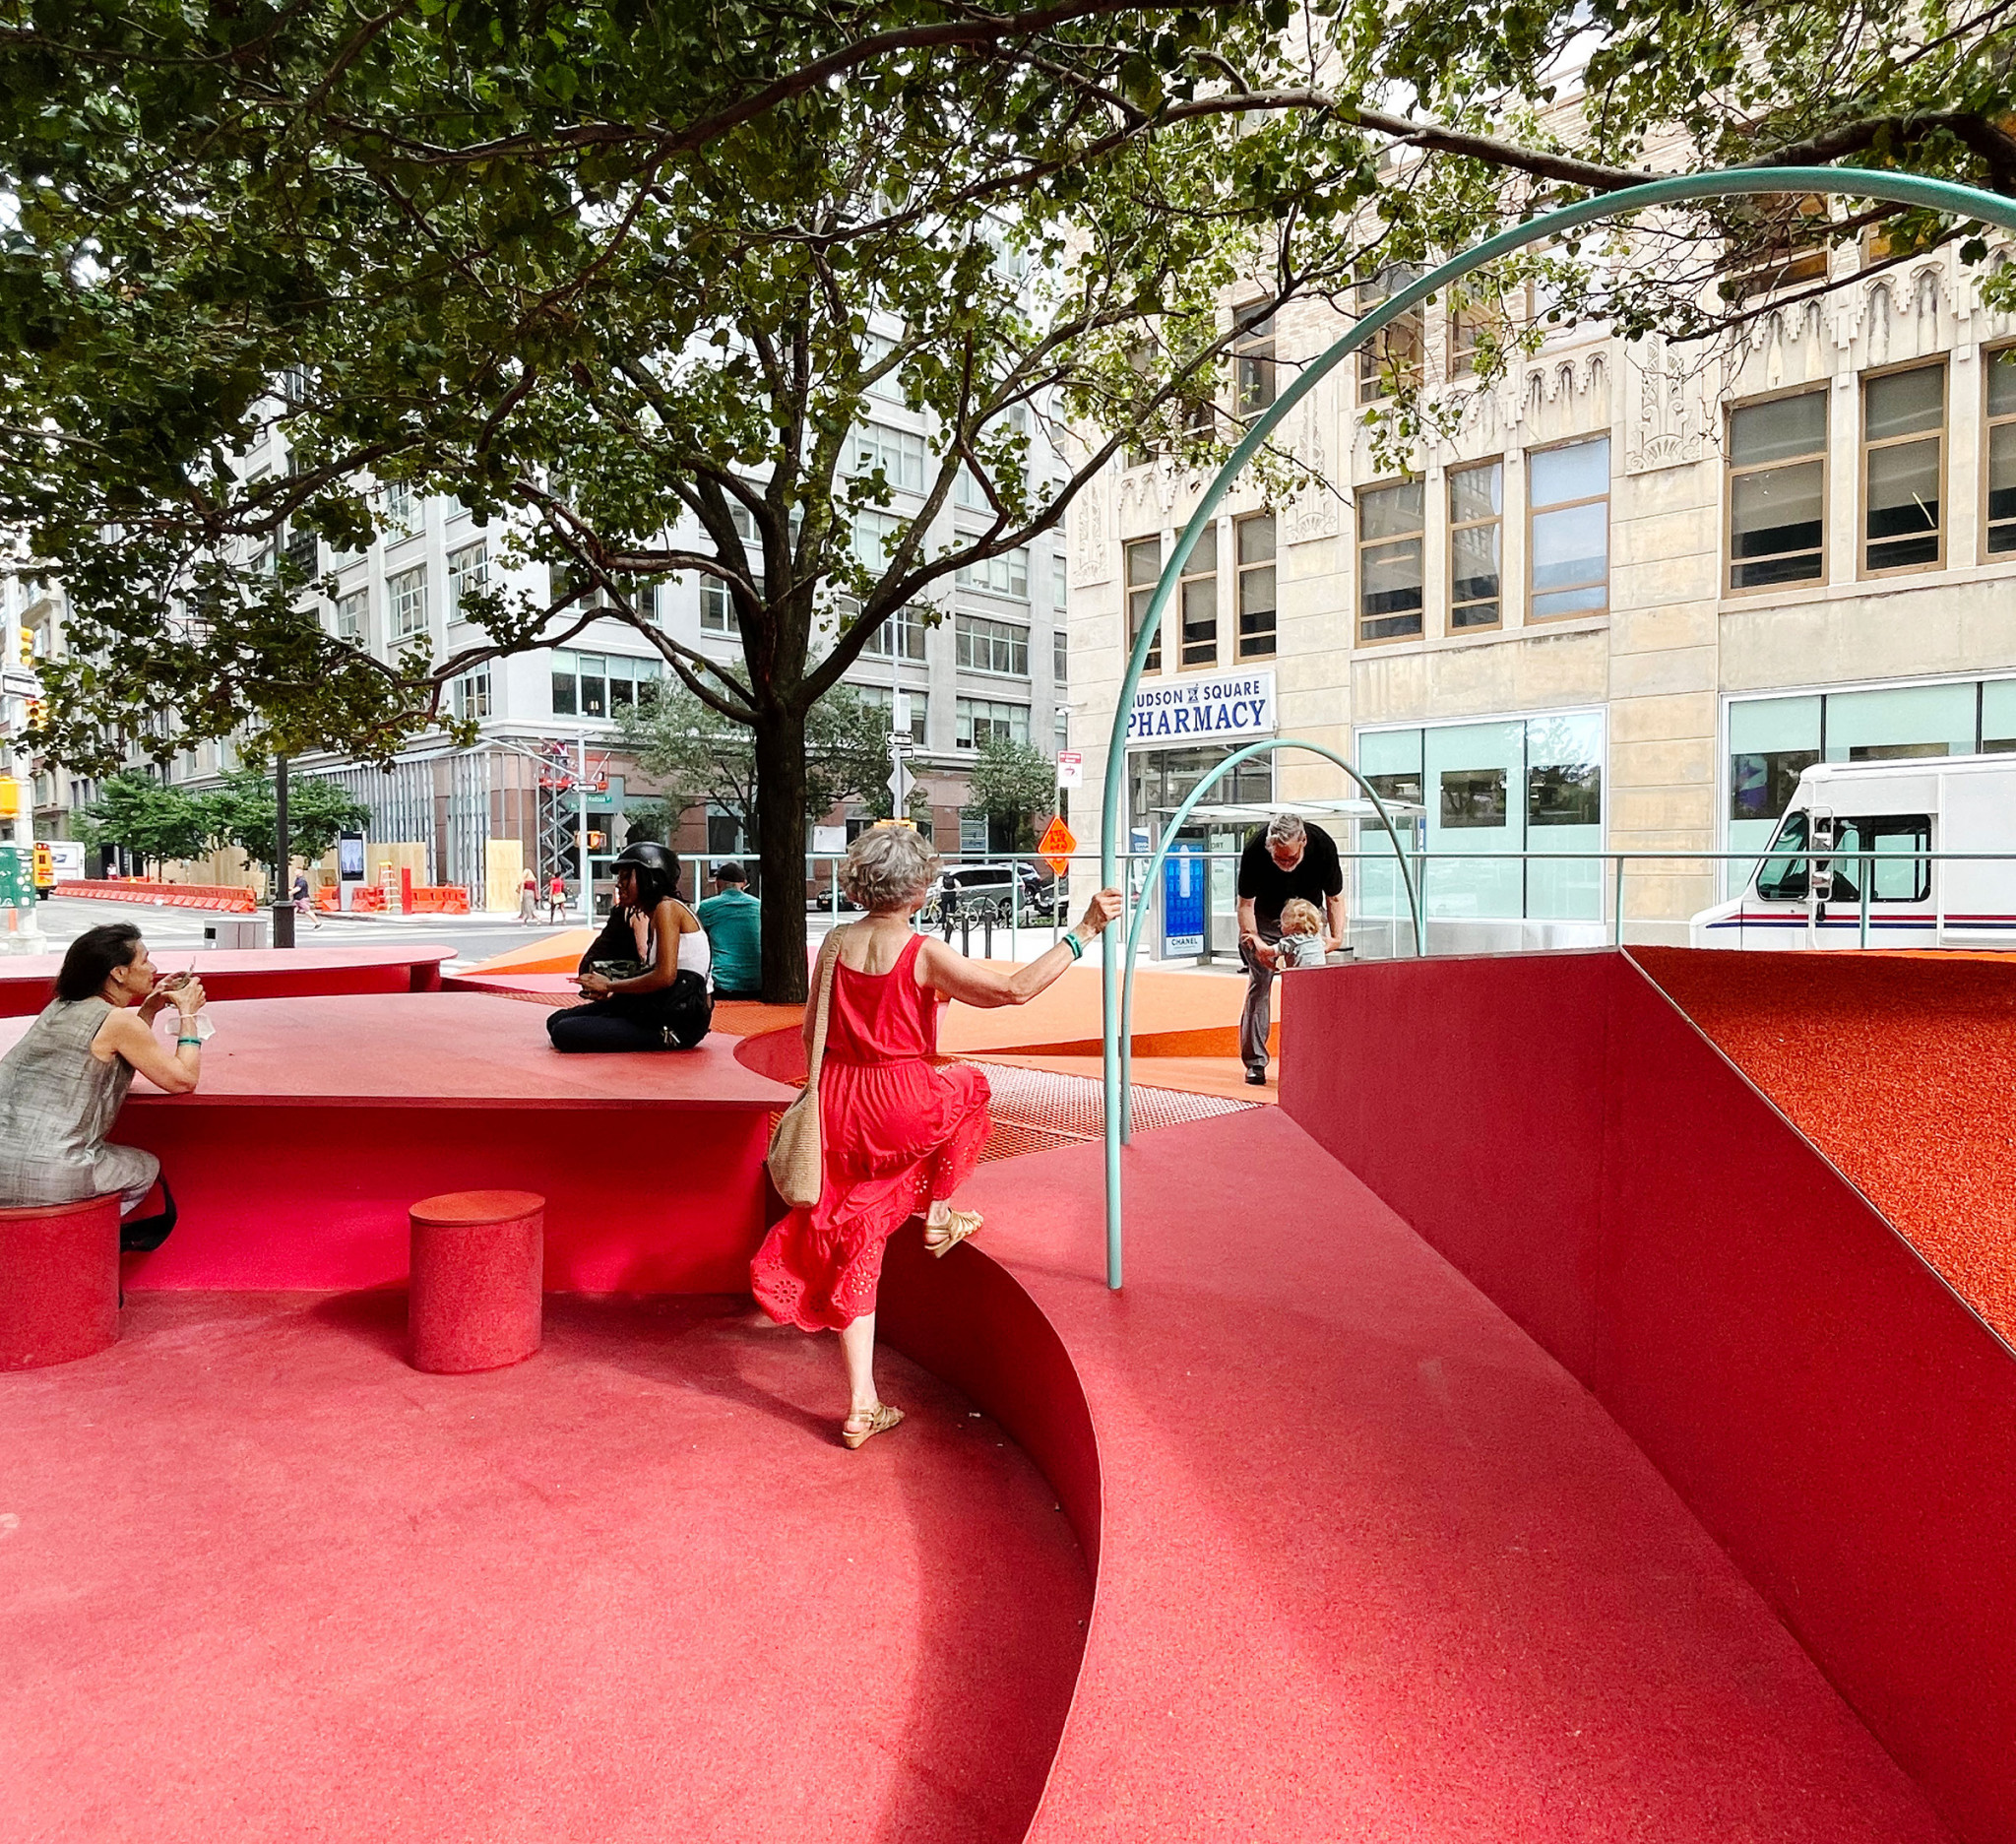 People move around a red interactive street installation